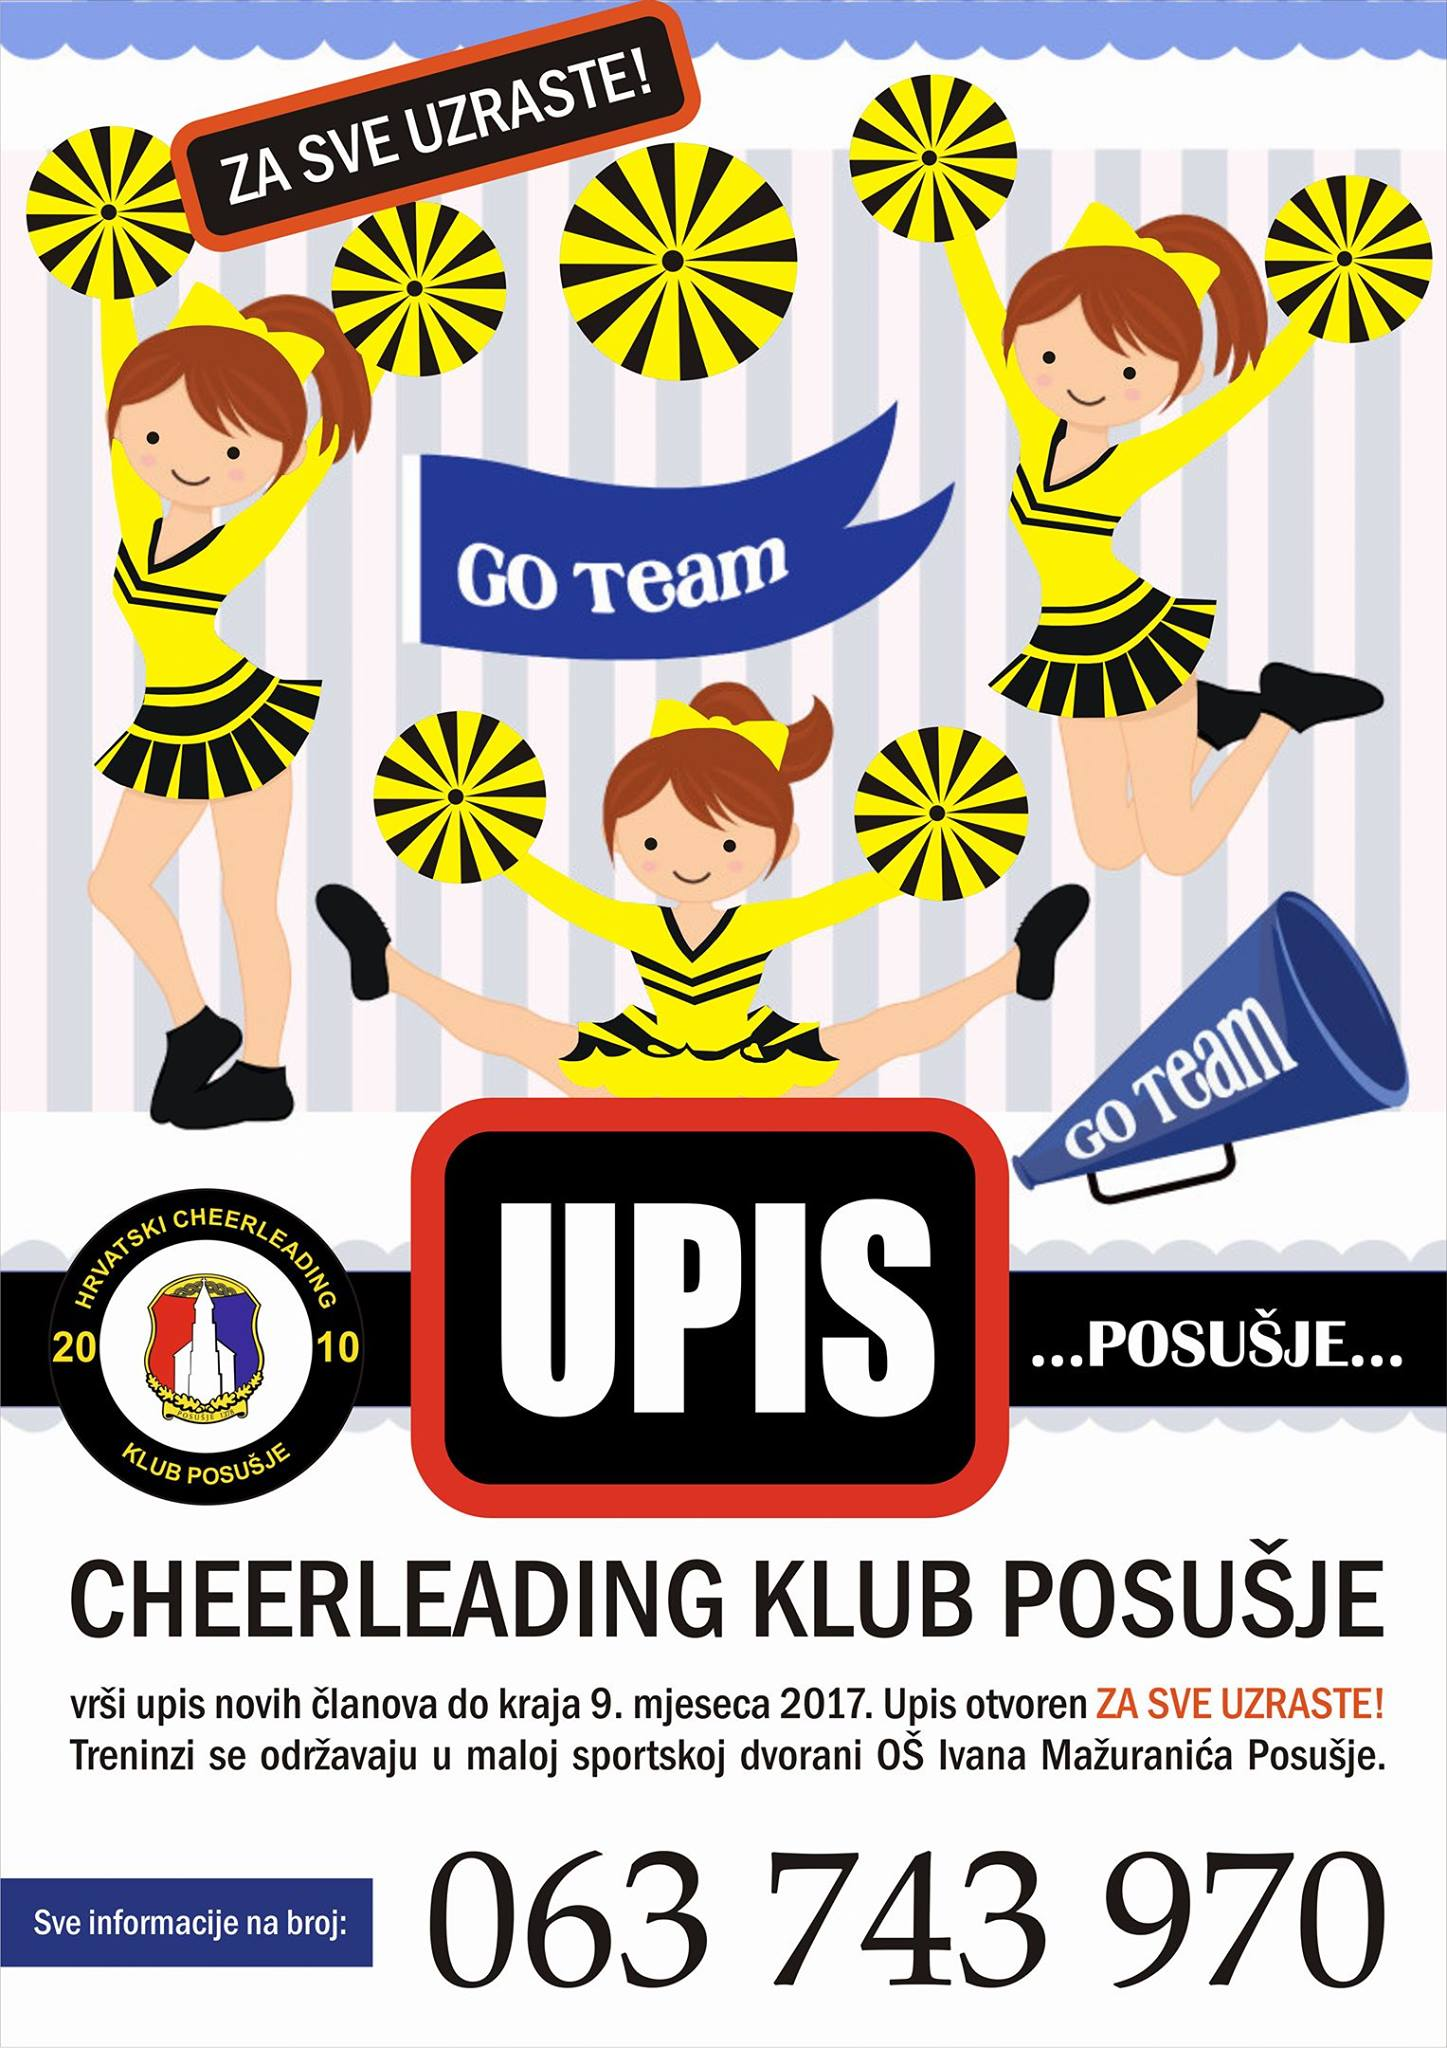 Postanite cheerleadersica!